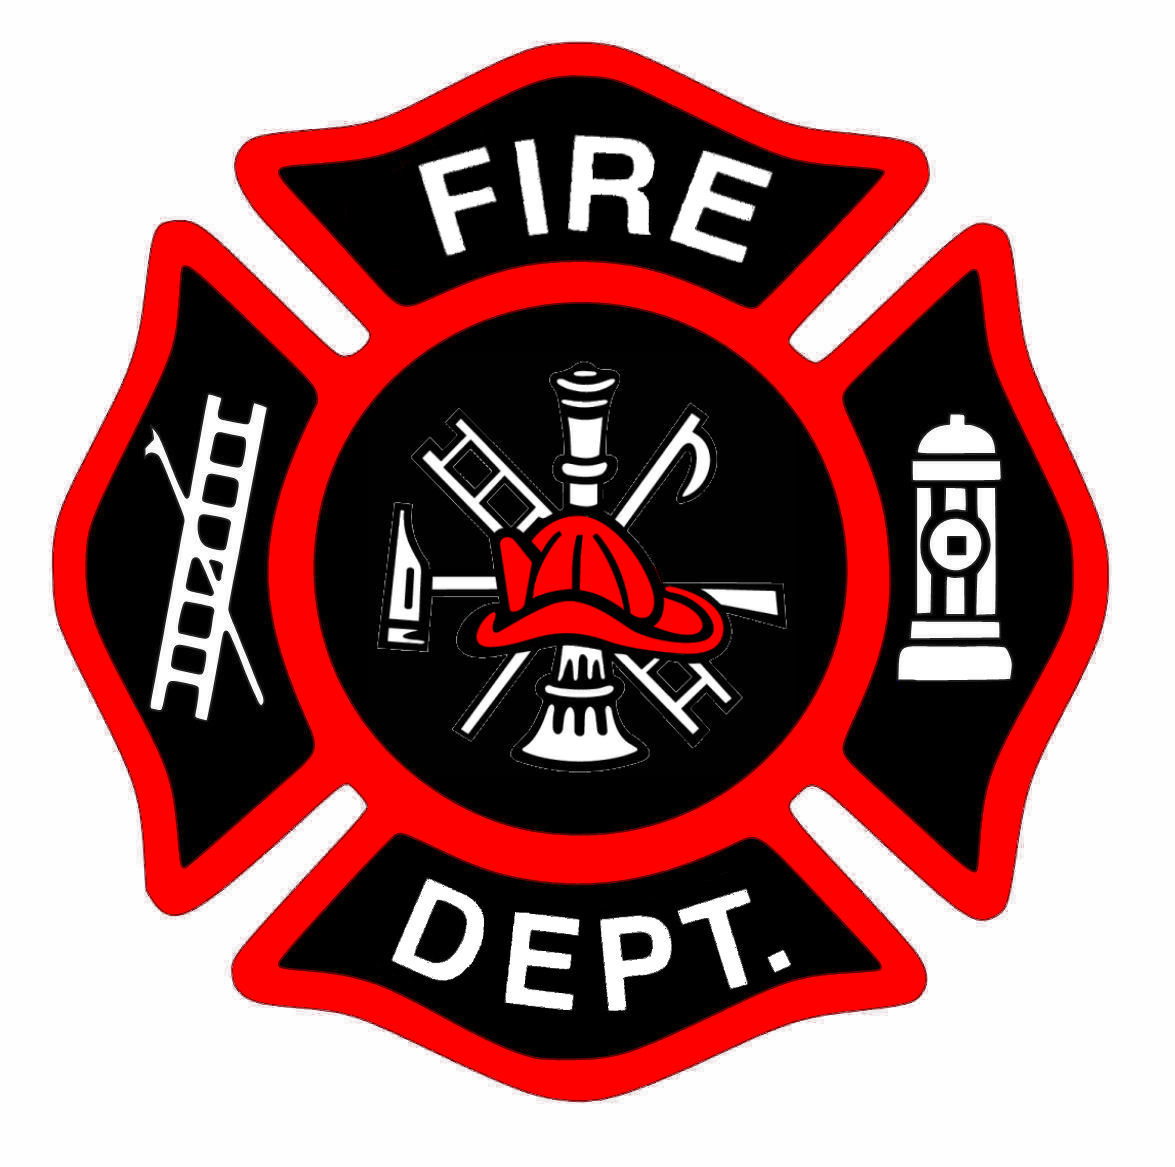 Fireman bage new red hat cut image